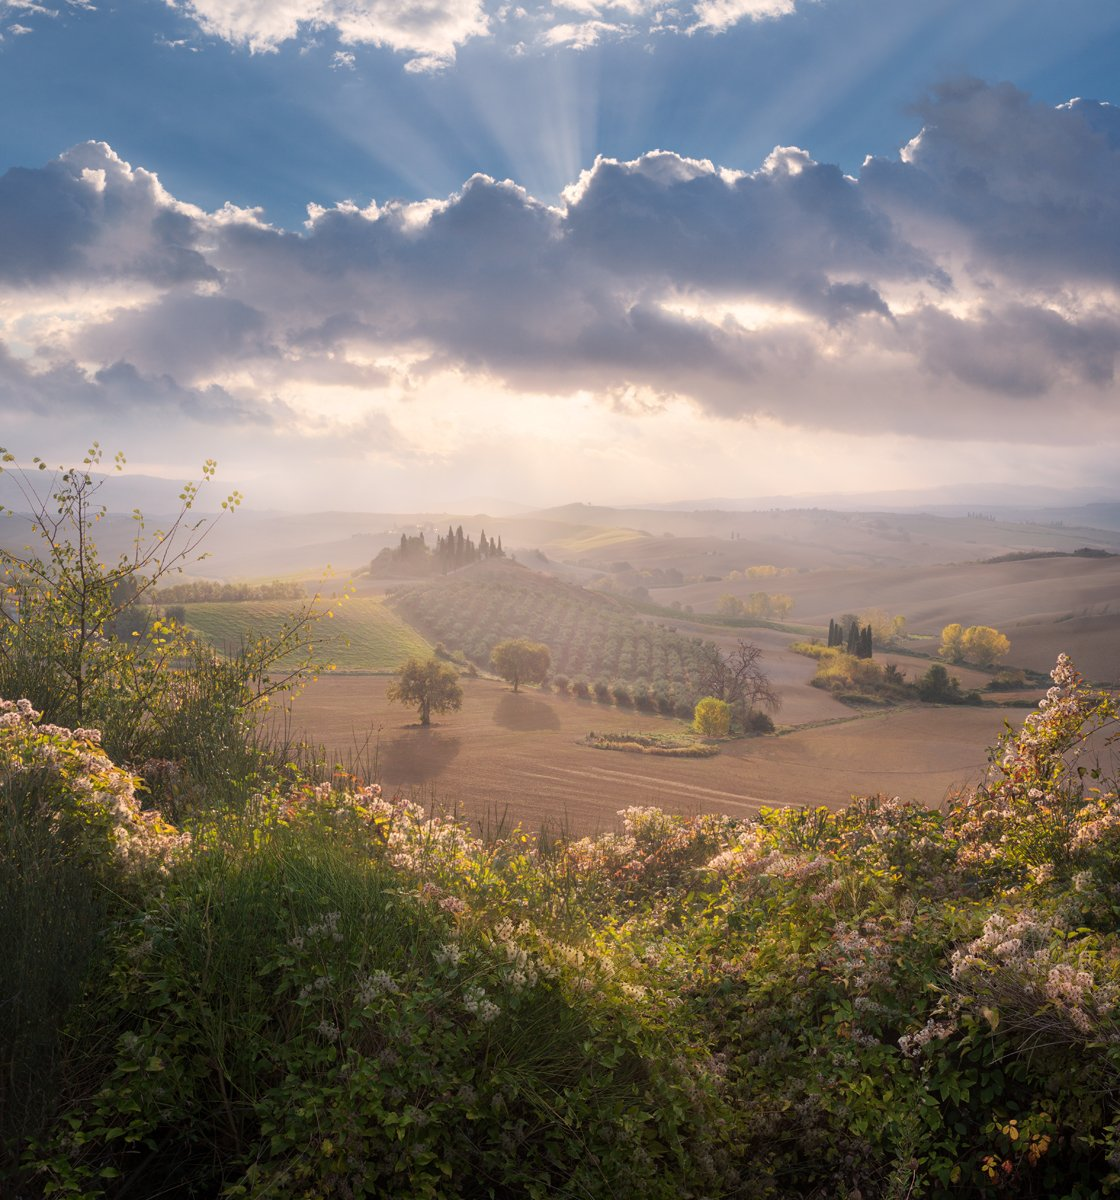 sv-phototravel.com, тоскана, podere belvedere, Валерий Щербина (sv-phototravel.com)